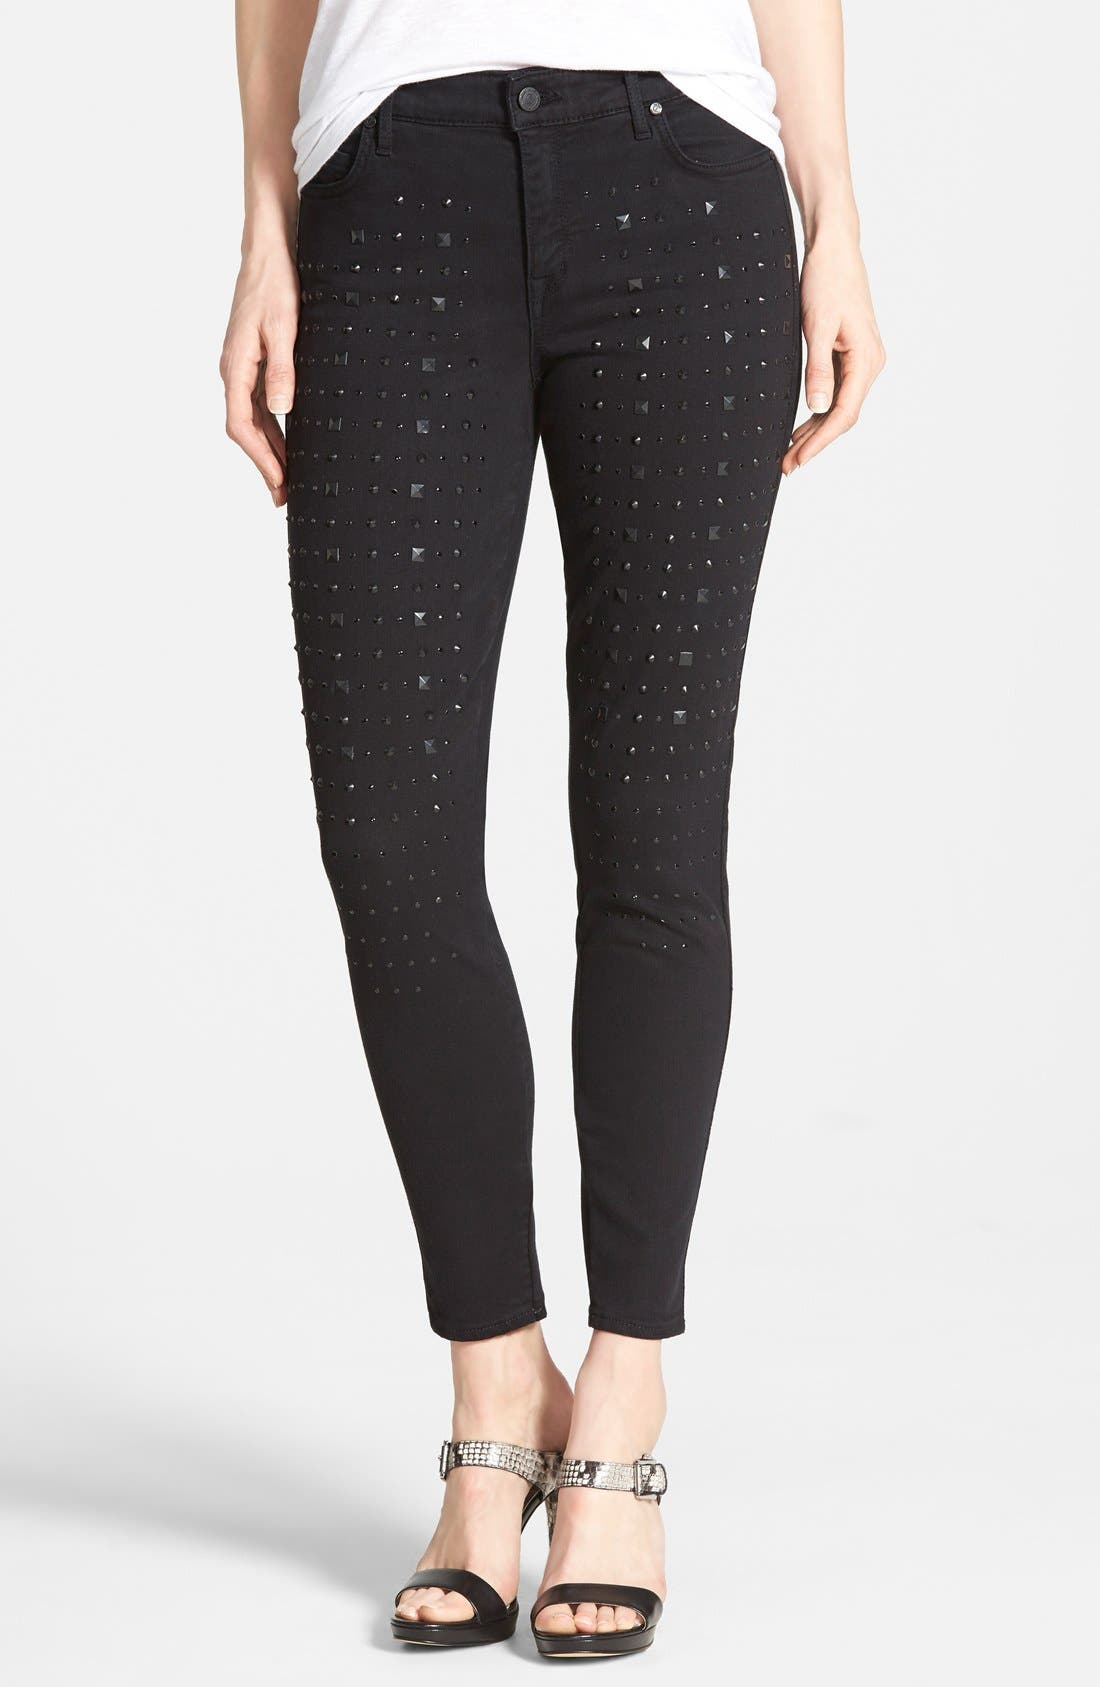 Alternate Image 1 Selected - CJ by Cookie Johnson 'Wisdom' Studded Ankle Skinny Jeans (Black)